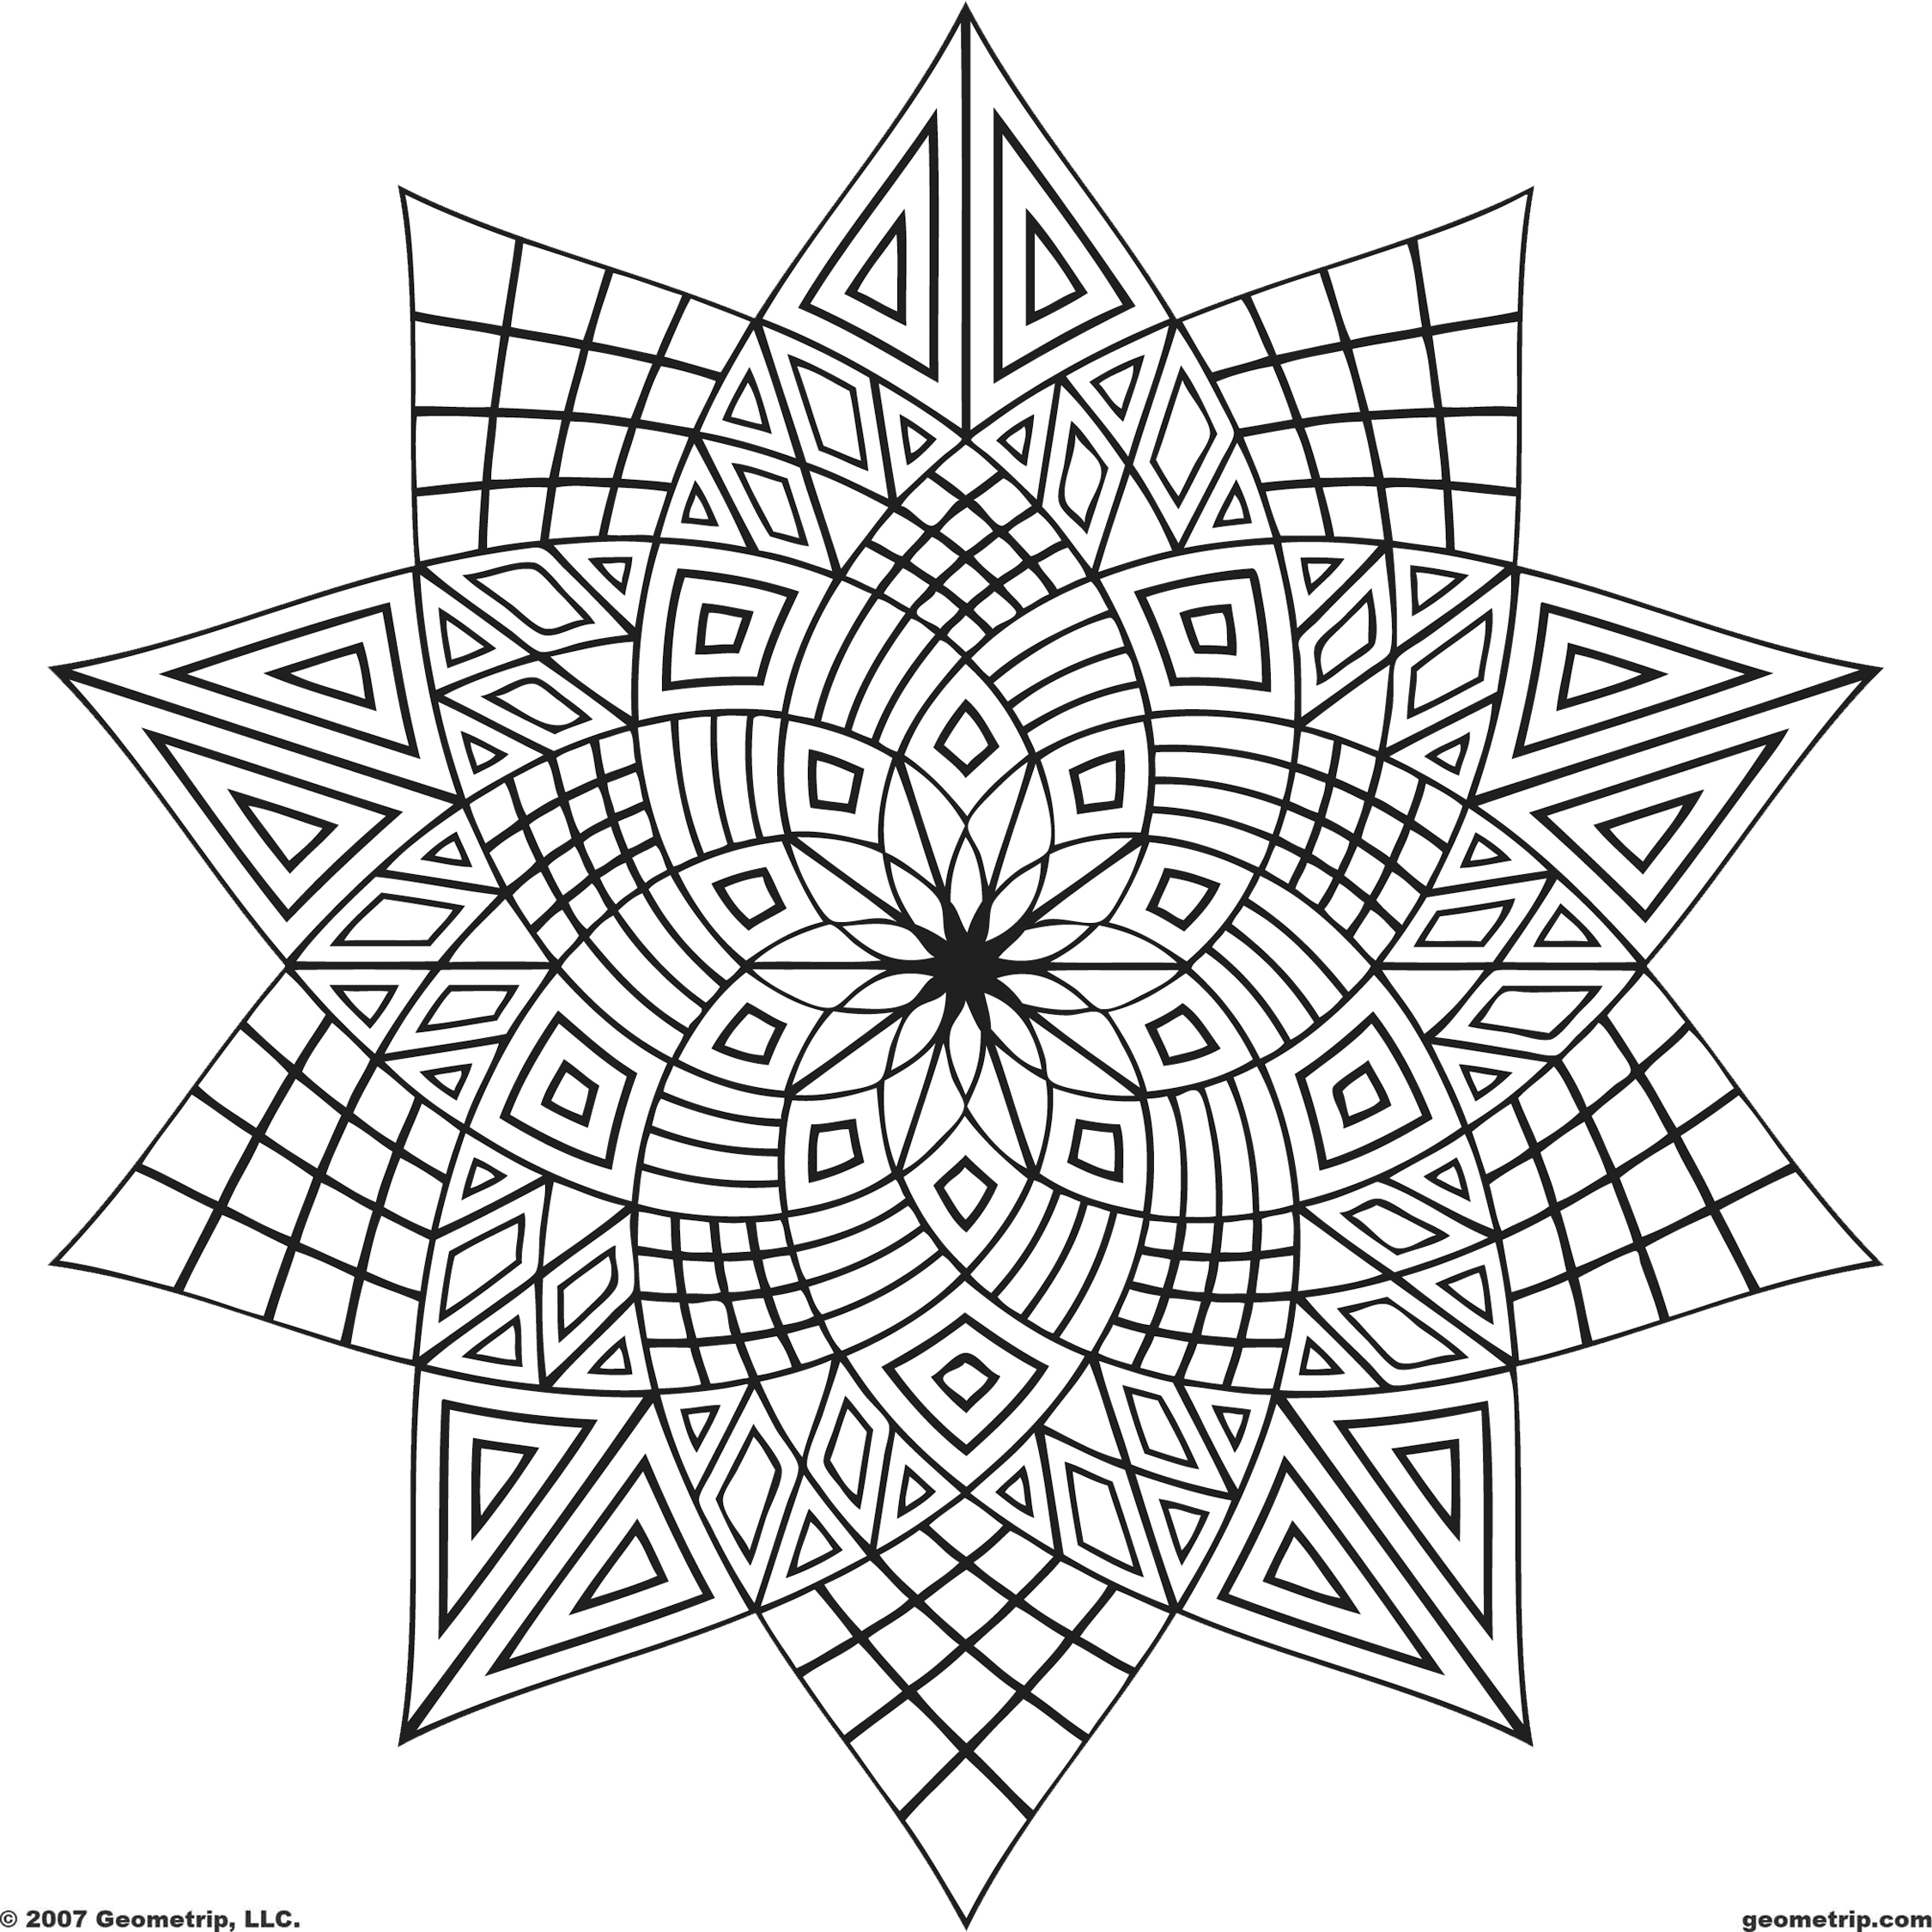 shapes images for coloring geometric shapes cartoon coloring page for shapes images coloring